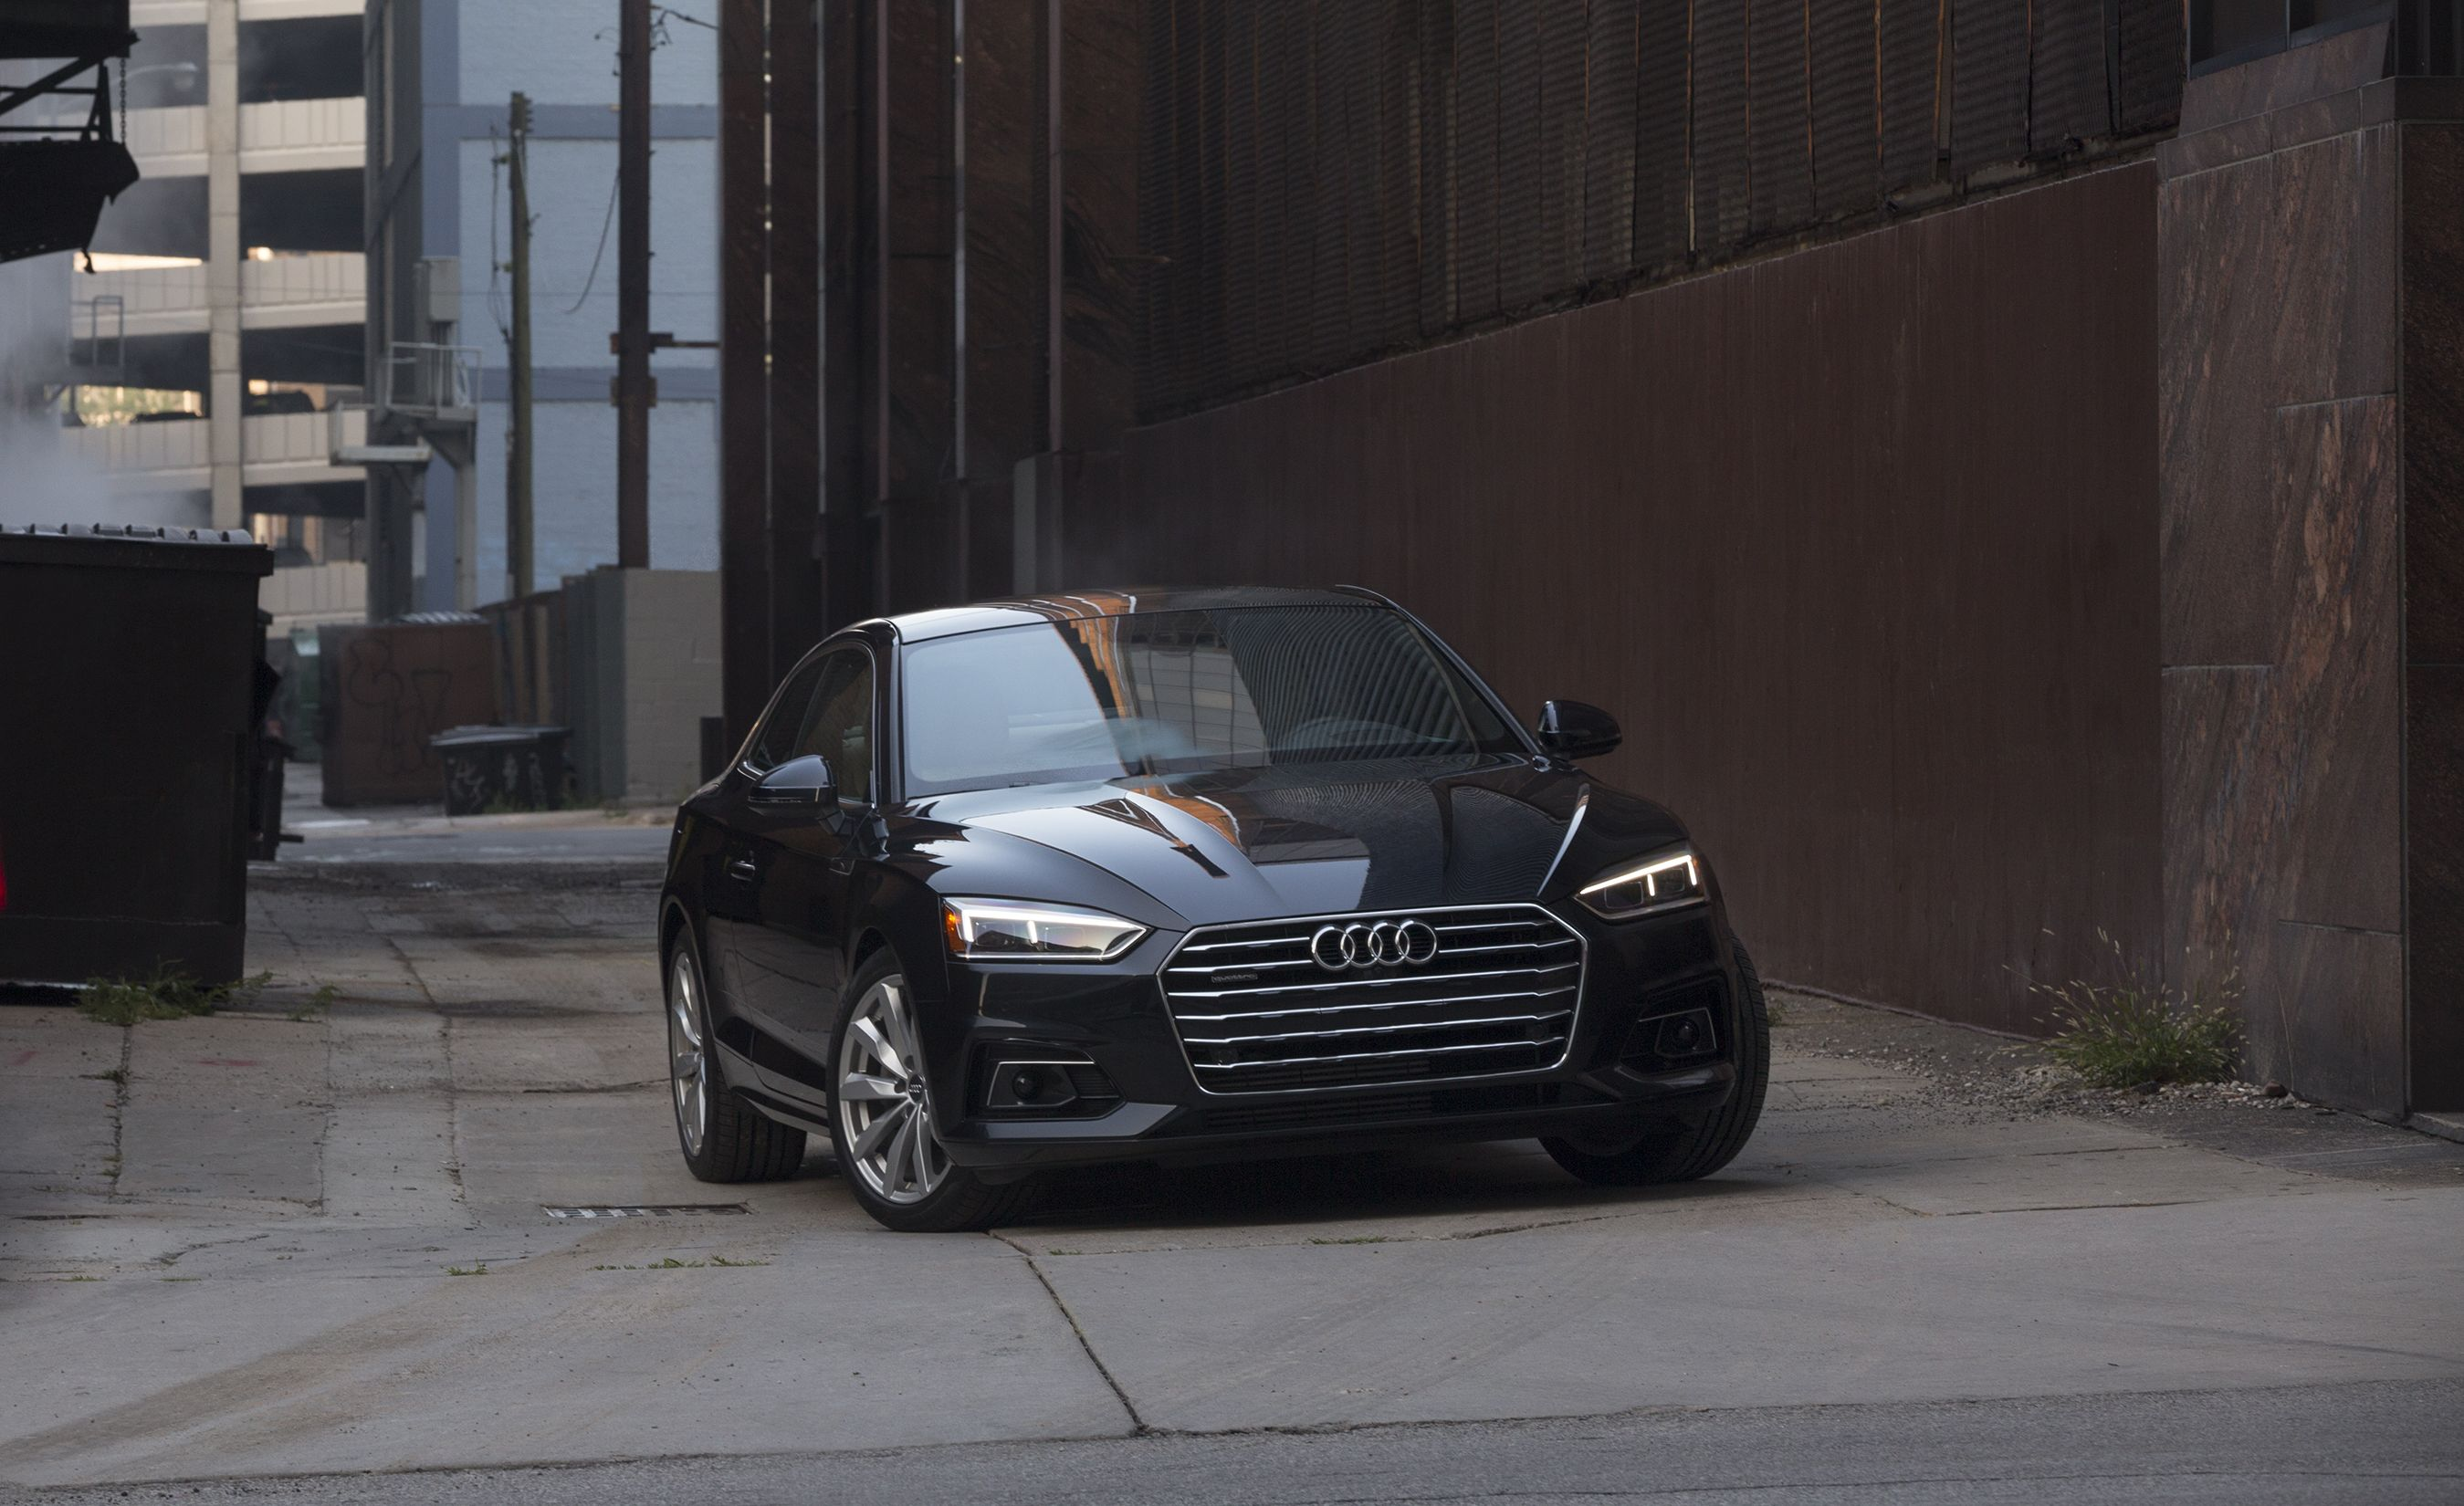 8. Audi A5 Keen on the excellence of Audi's A5 Sportback or A4 sedan, but want it in a less practical two-door package? The A5 coupe and A5 convertible are your choices.